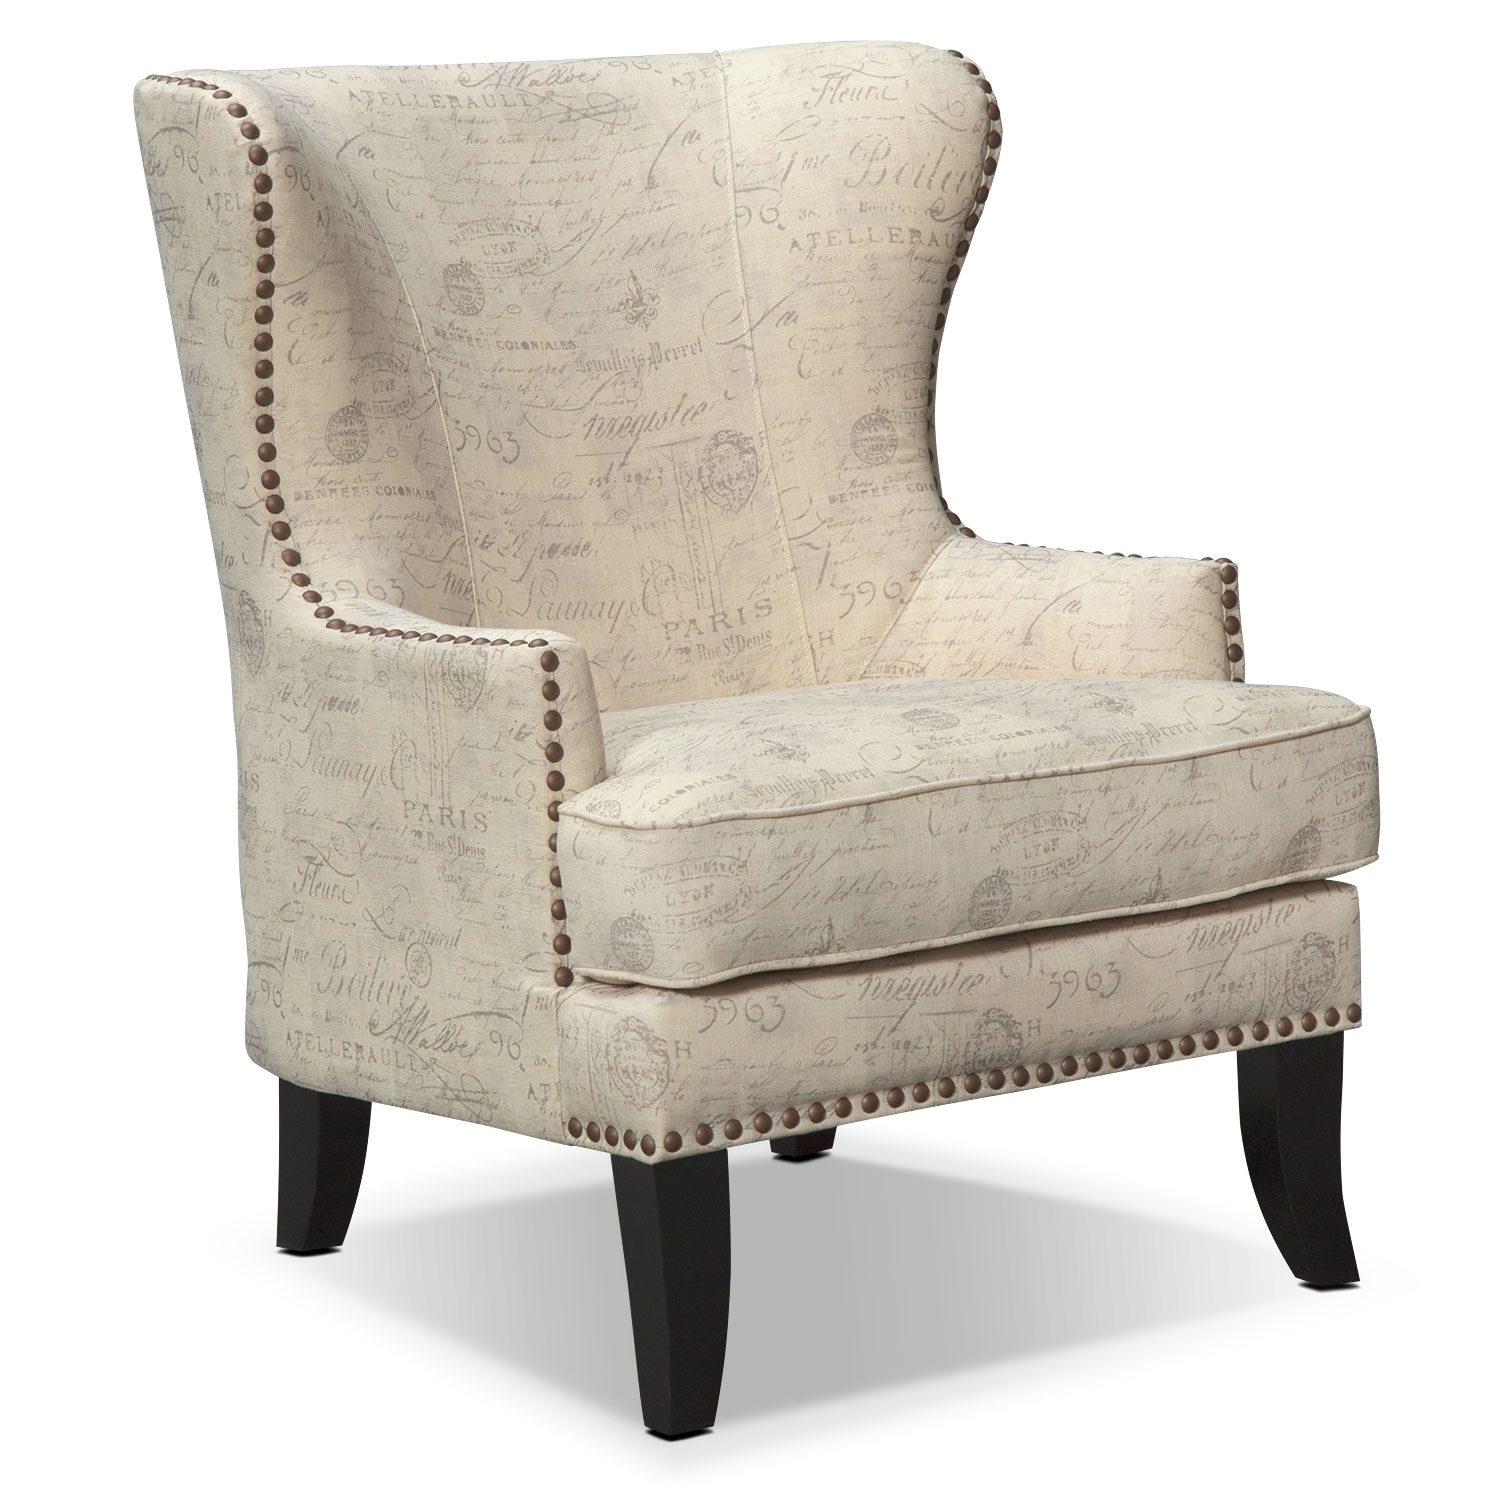 Marseille Accent Chair - Cream and Black